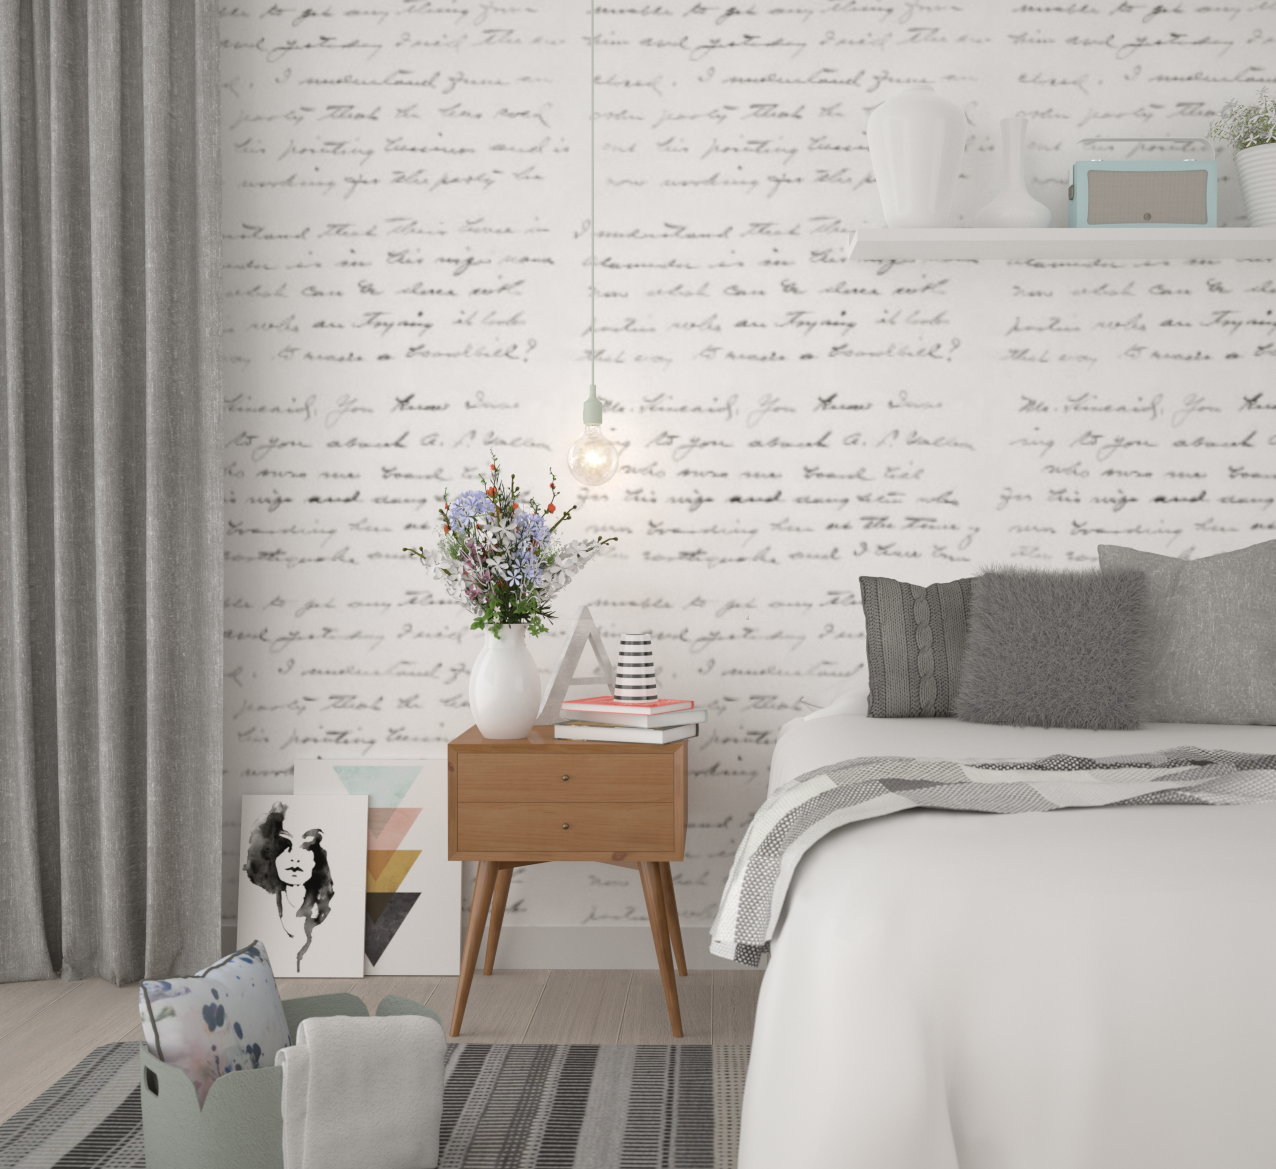 Bedroom Interior Design: How To Create An Awesome Vignette!